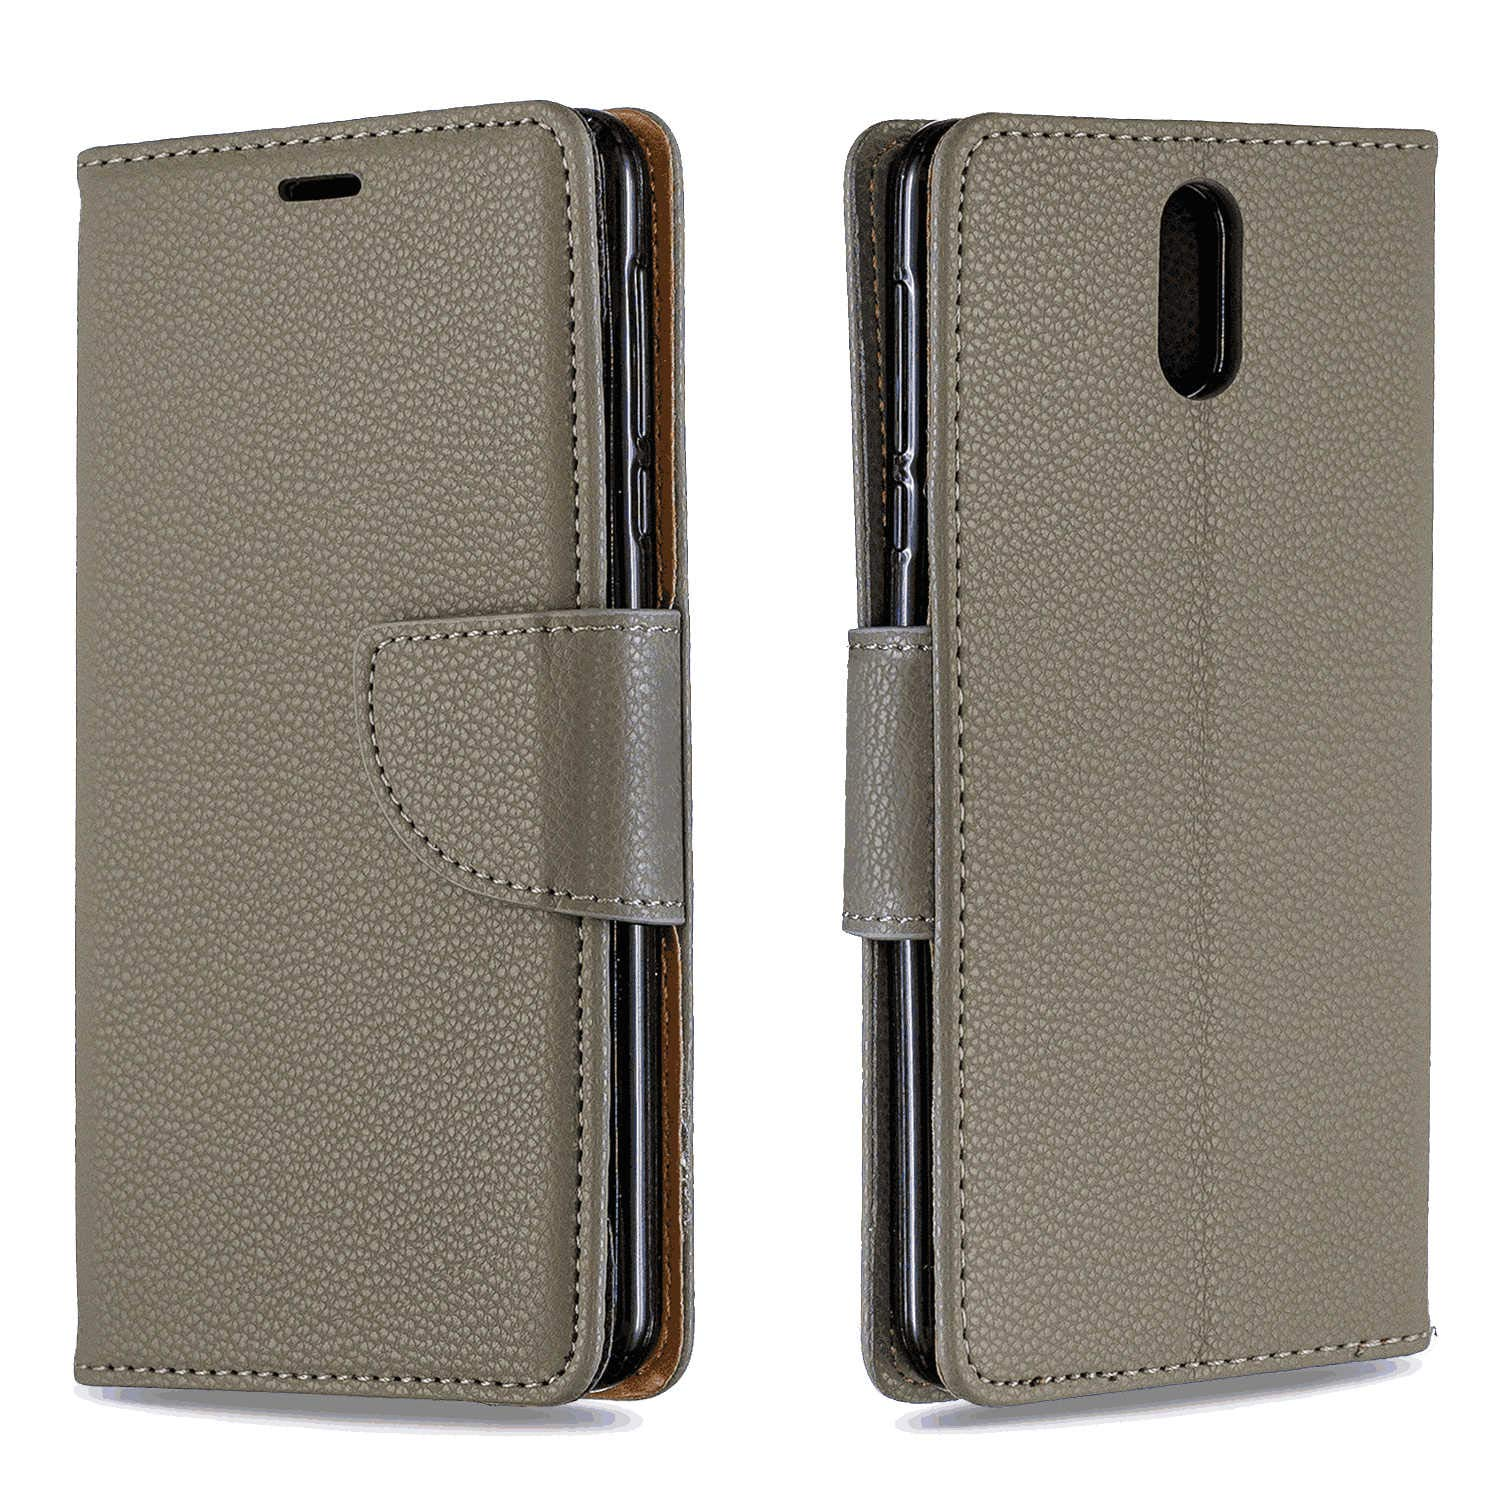 Samsung Galaxy A10S Flip Case Cover for Samsung Galaxy A10S Leather Kickstand Mobile Phone Cover Extra-Shockproof Business Card Holders with Free Waterproof-Bag Business